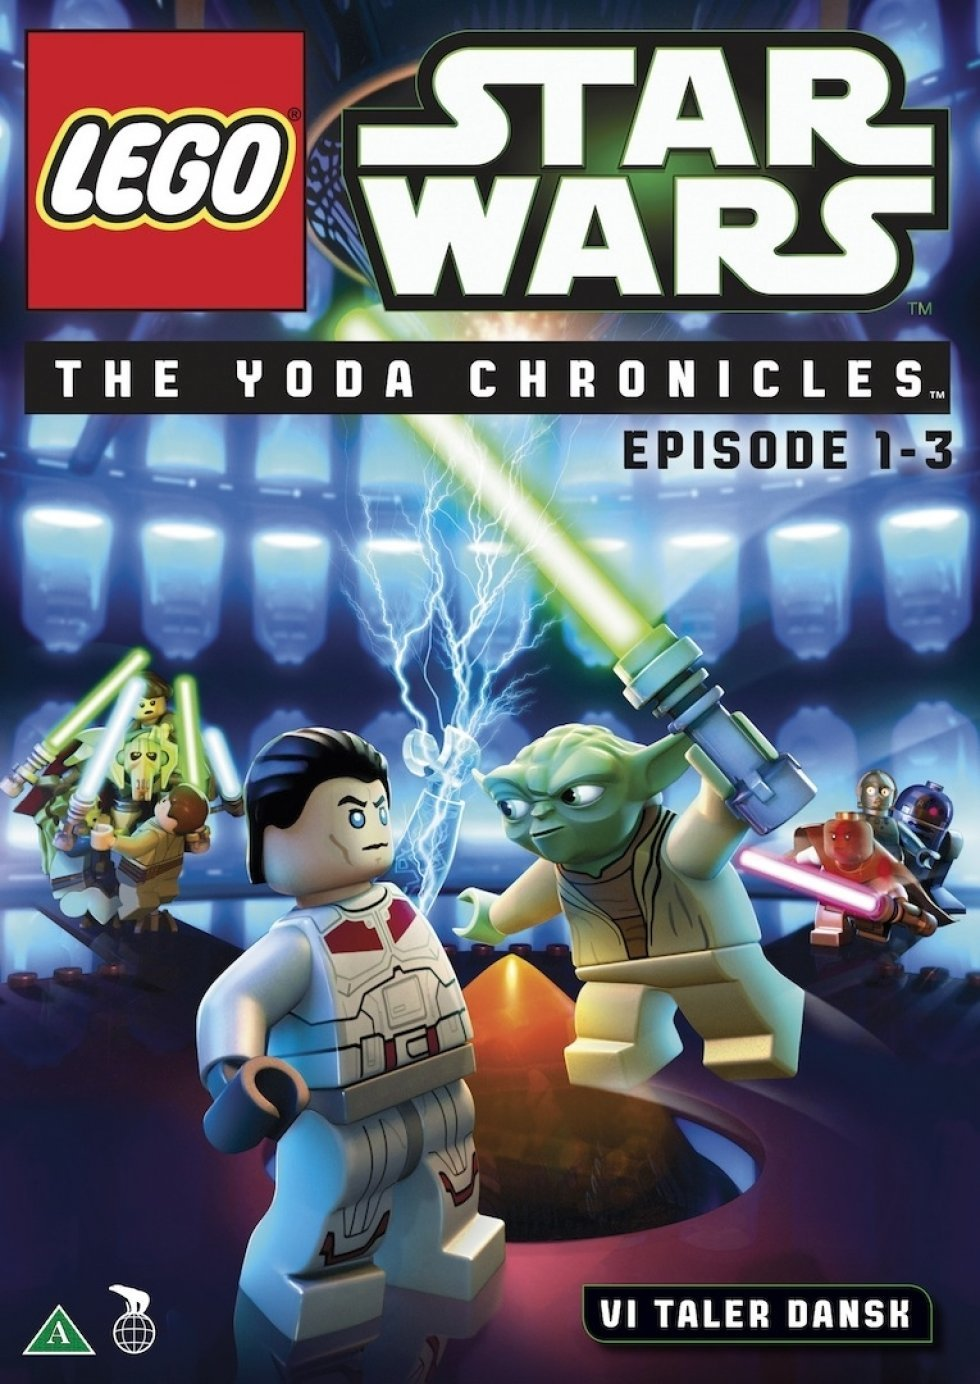 [Konkurrence]: LEGO Star Wars - The Yoda Chronicles